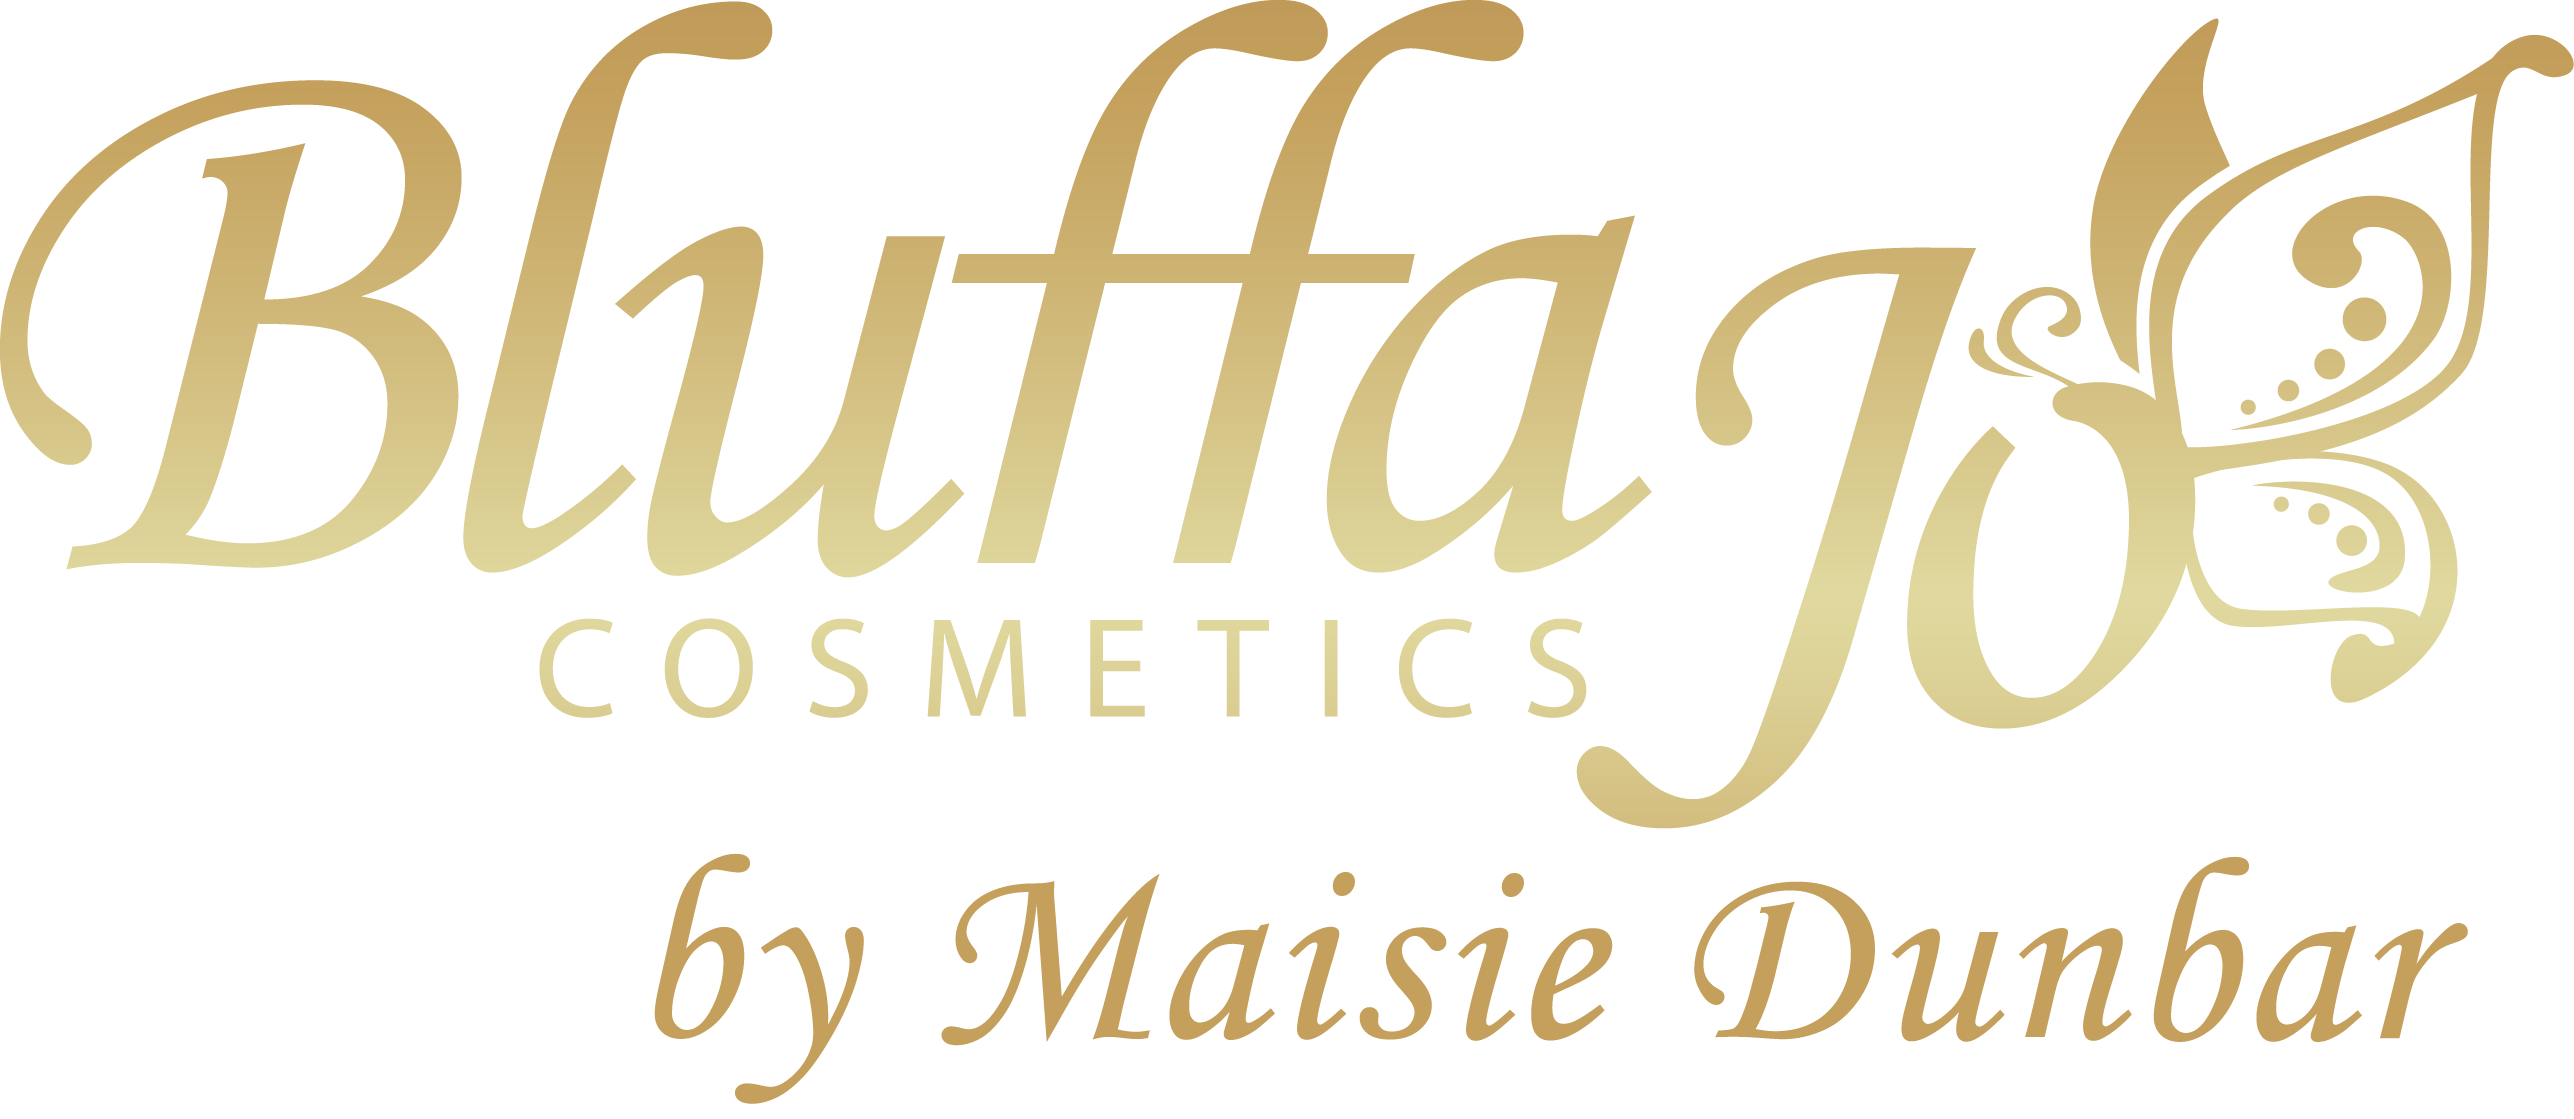 Bluffajo Cosmetics